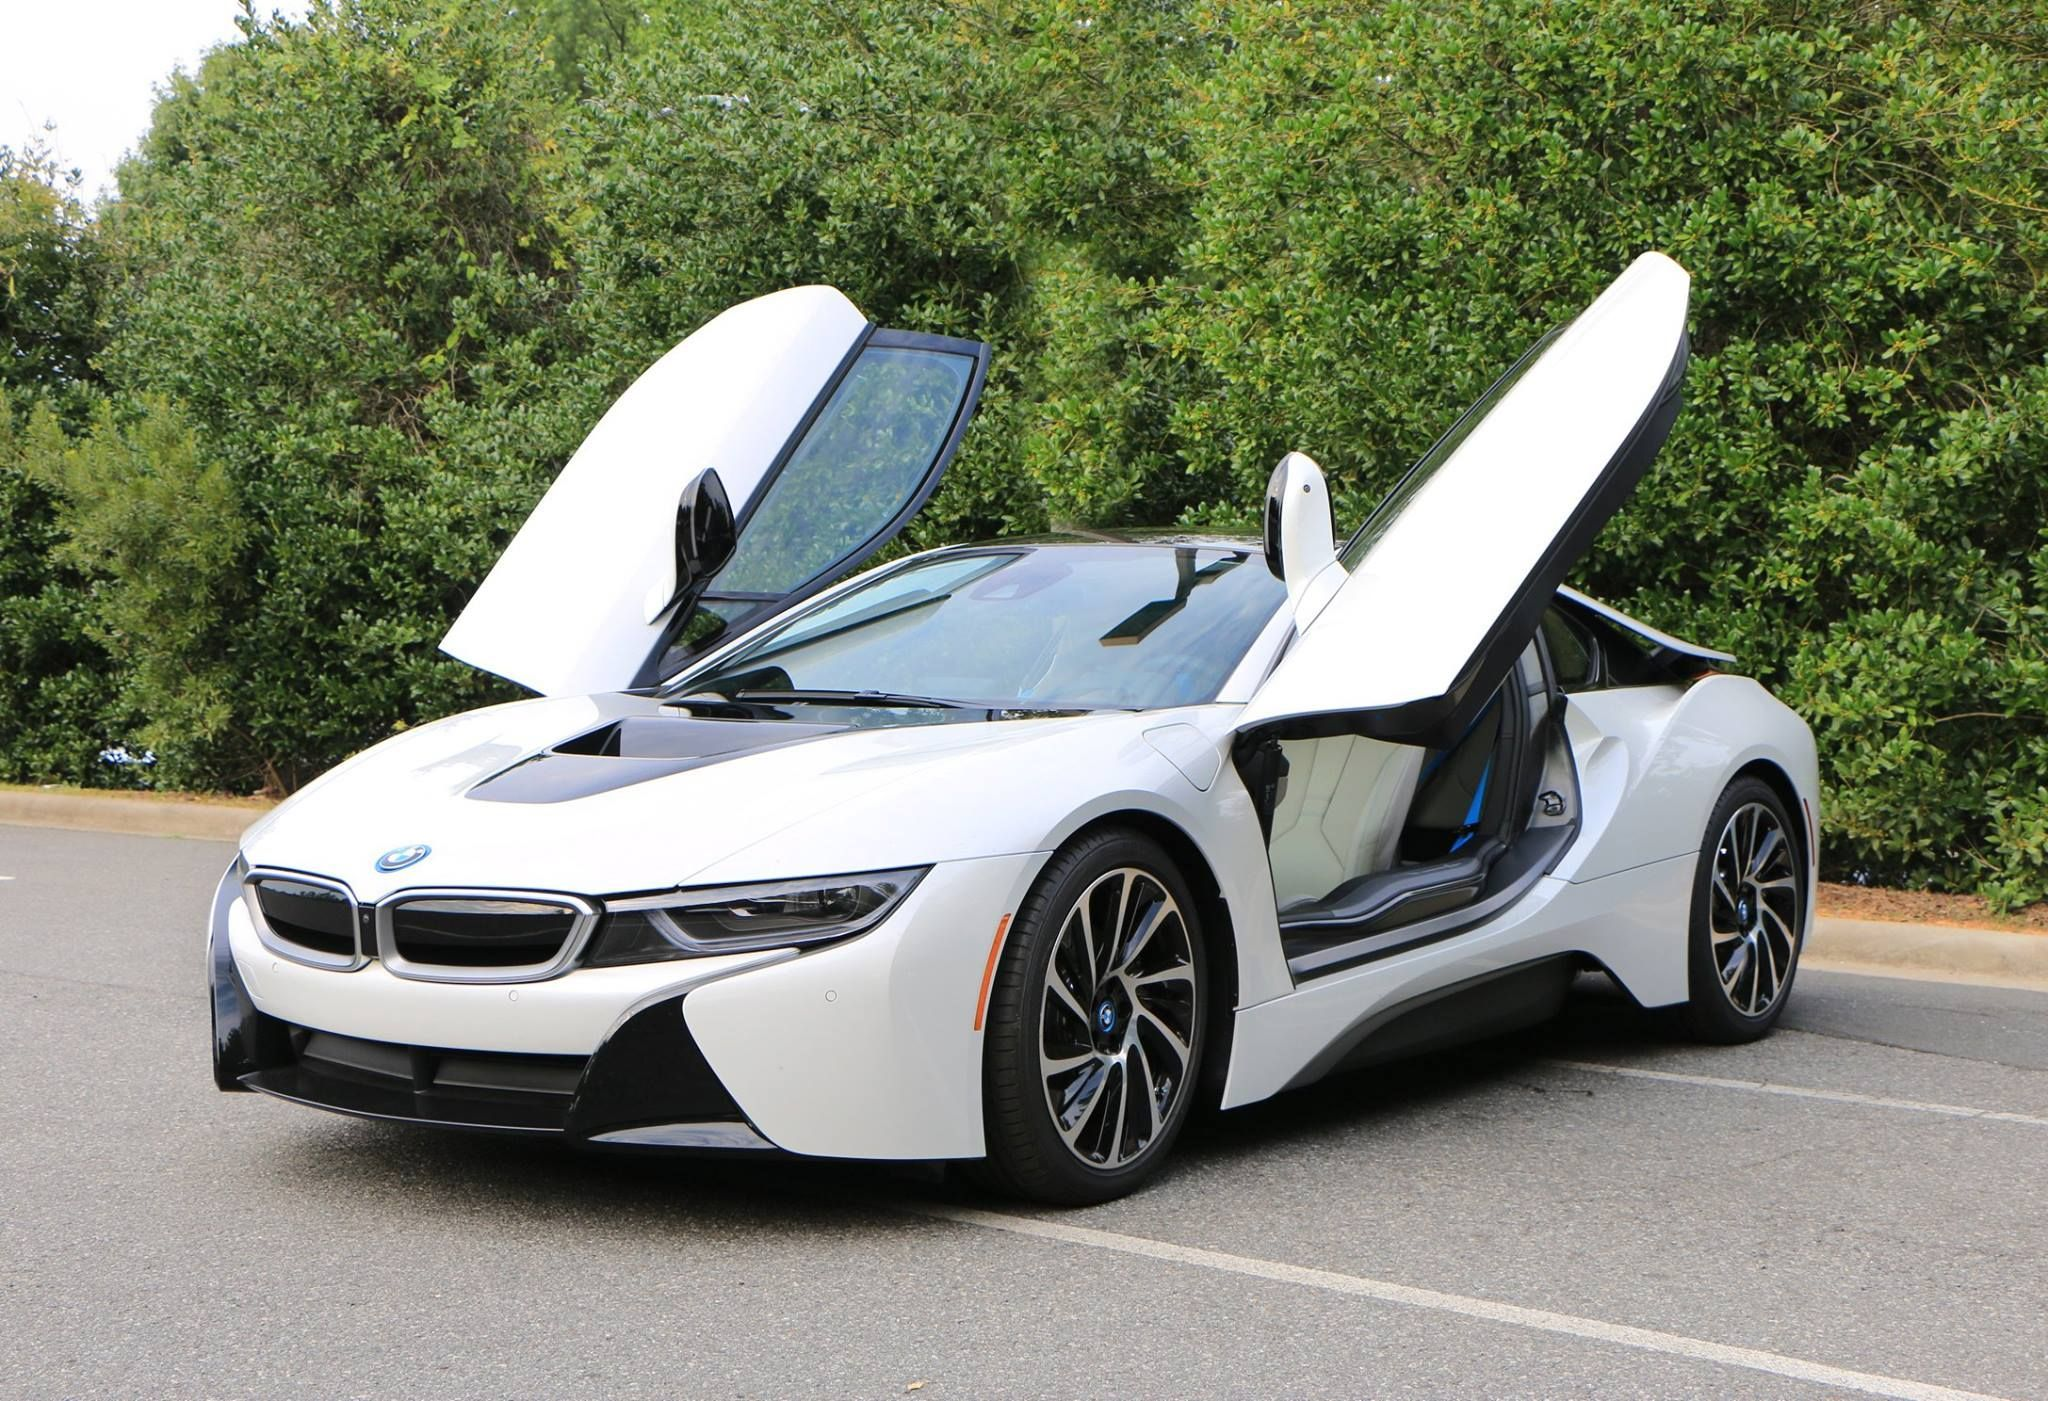 BMW i8 models are still available at BMW dealerships Bmw